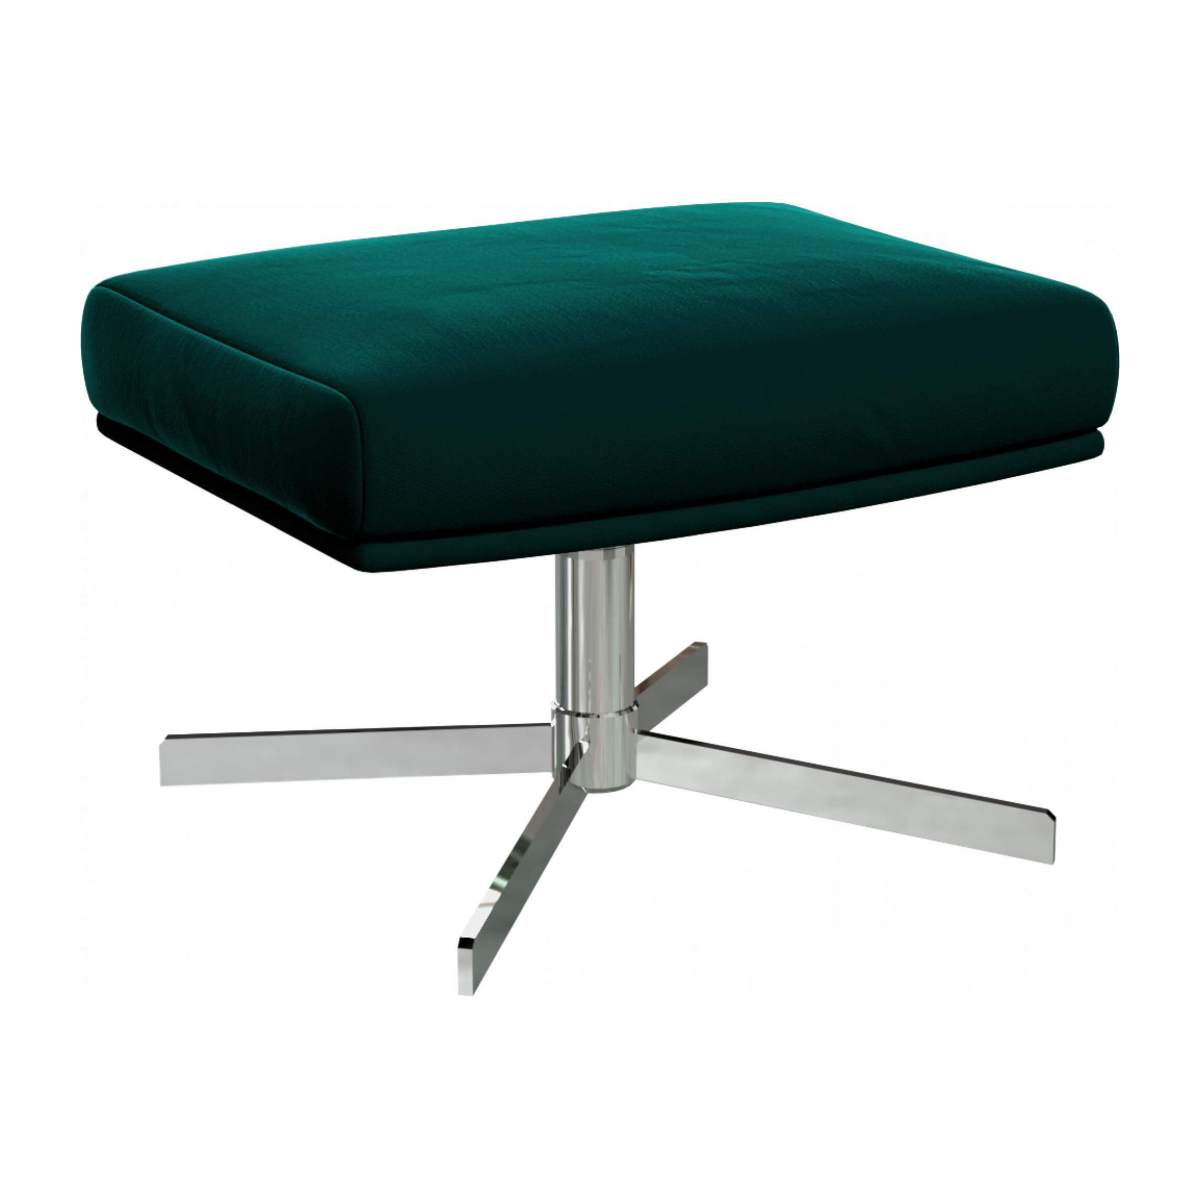 Footstool in Super Velvet fabric, petrol blue with metal cross leg n°2